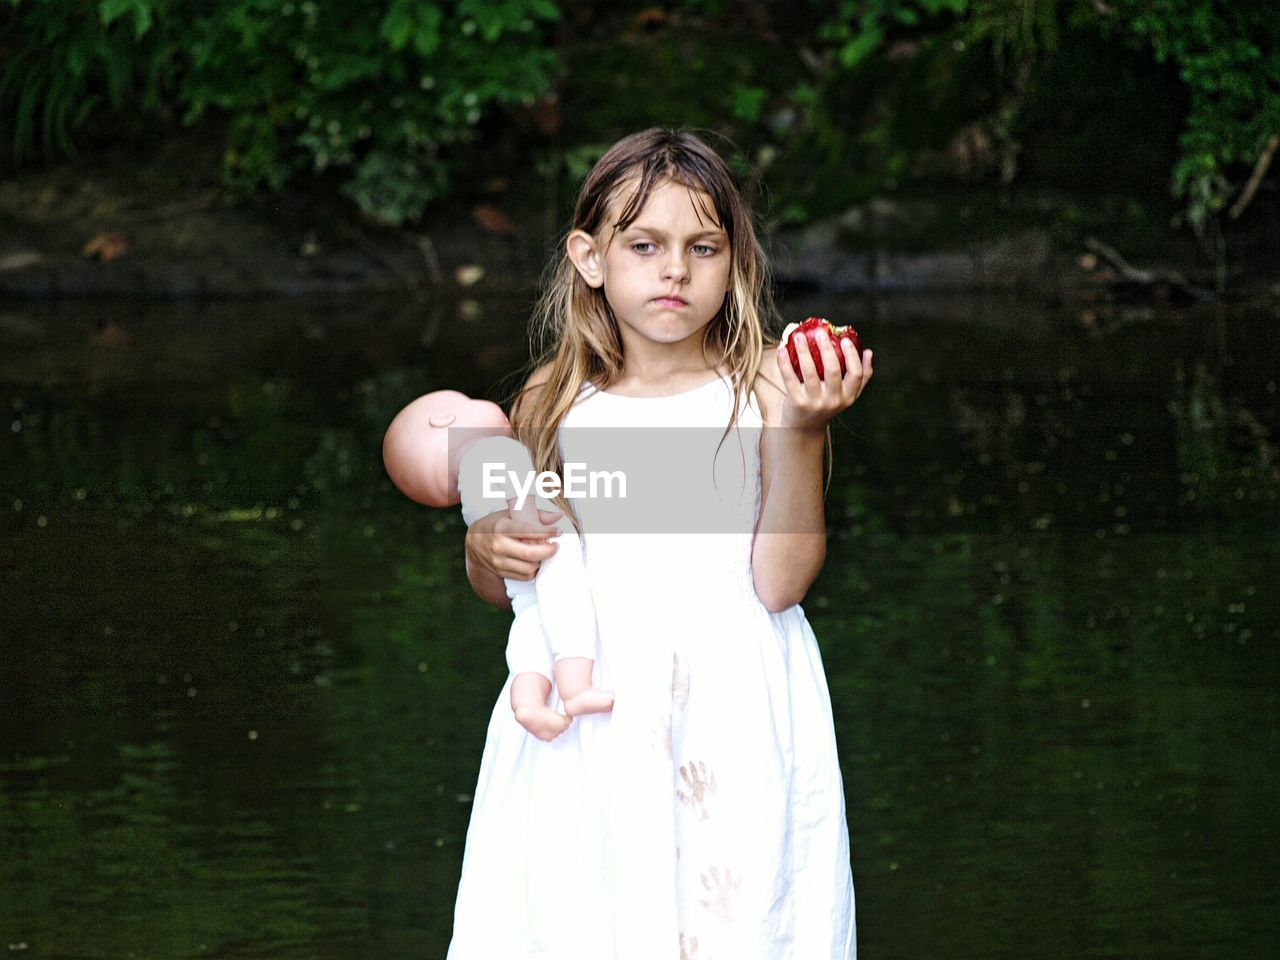 Girl Holding Doll While Eating Apple By Creek